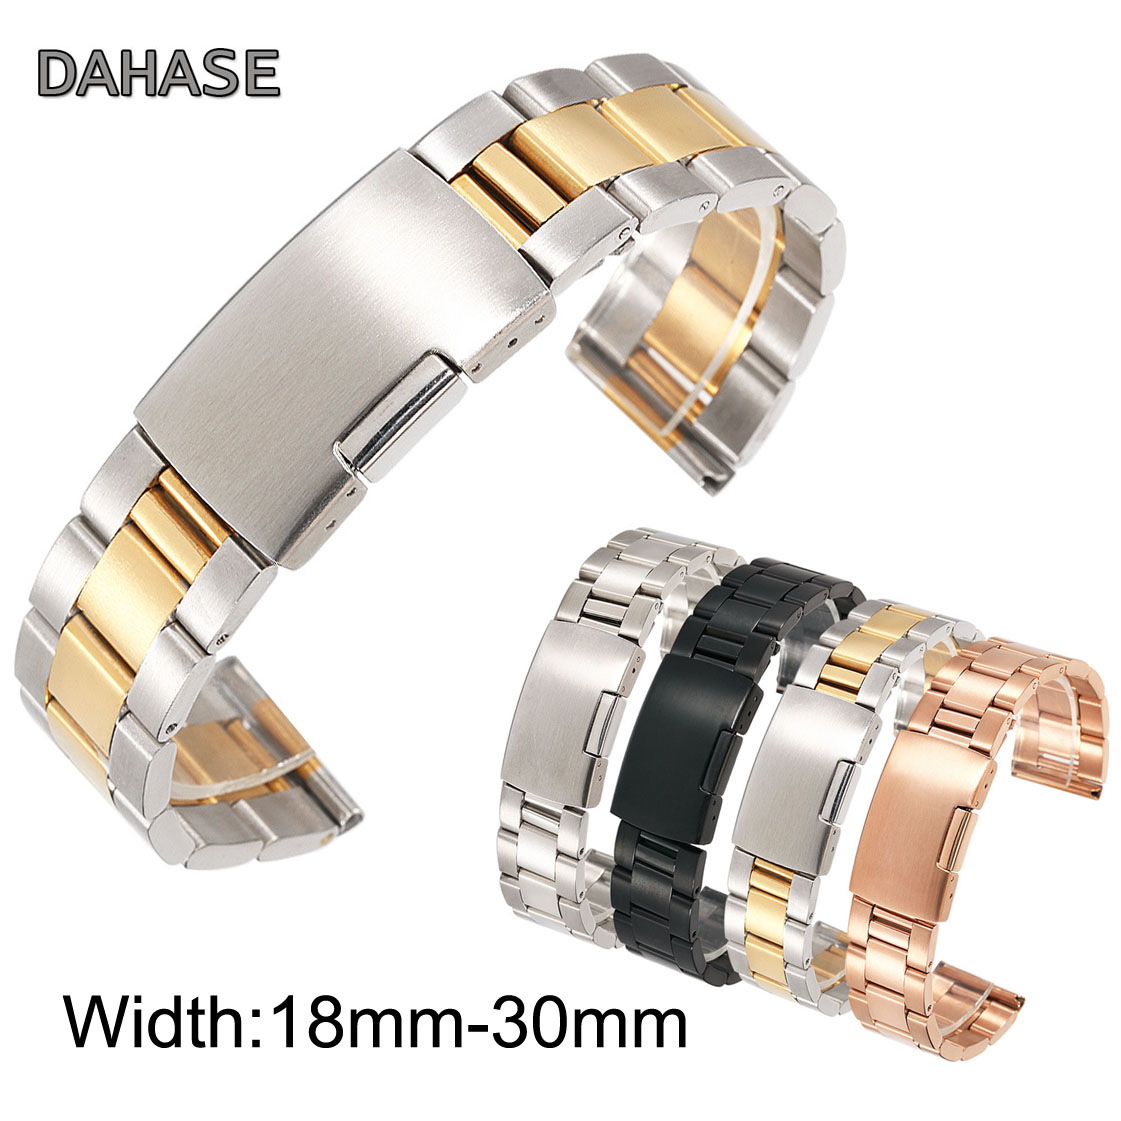 30mm 28mm 26mm 24mm 22mm 20mm 18mm Stainless Steel Watch Band Solid Classic Metal Wristband for Smart Watch Strap Men Women silver watchband bracelet strap 18mm 20mm 22mm 24mm 26mm high quality metal stainless steel watch band for men women hours